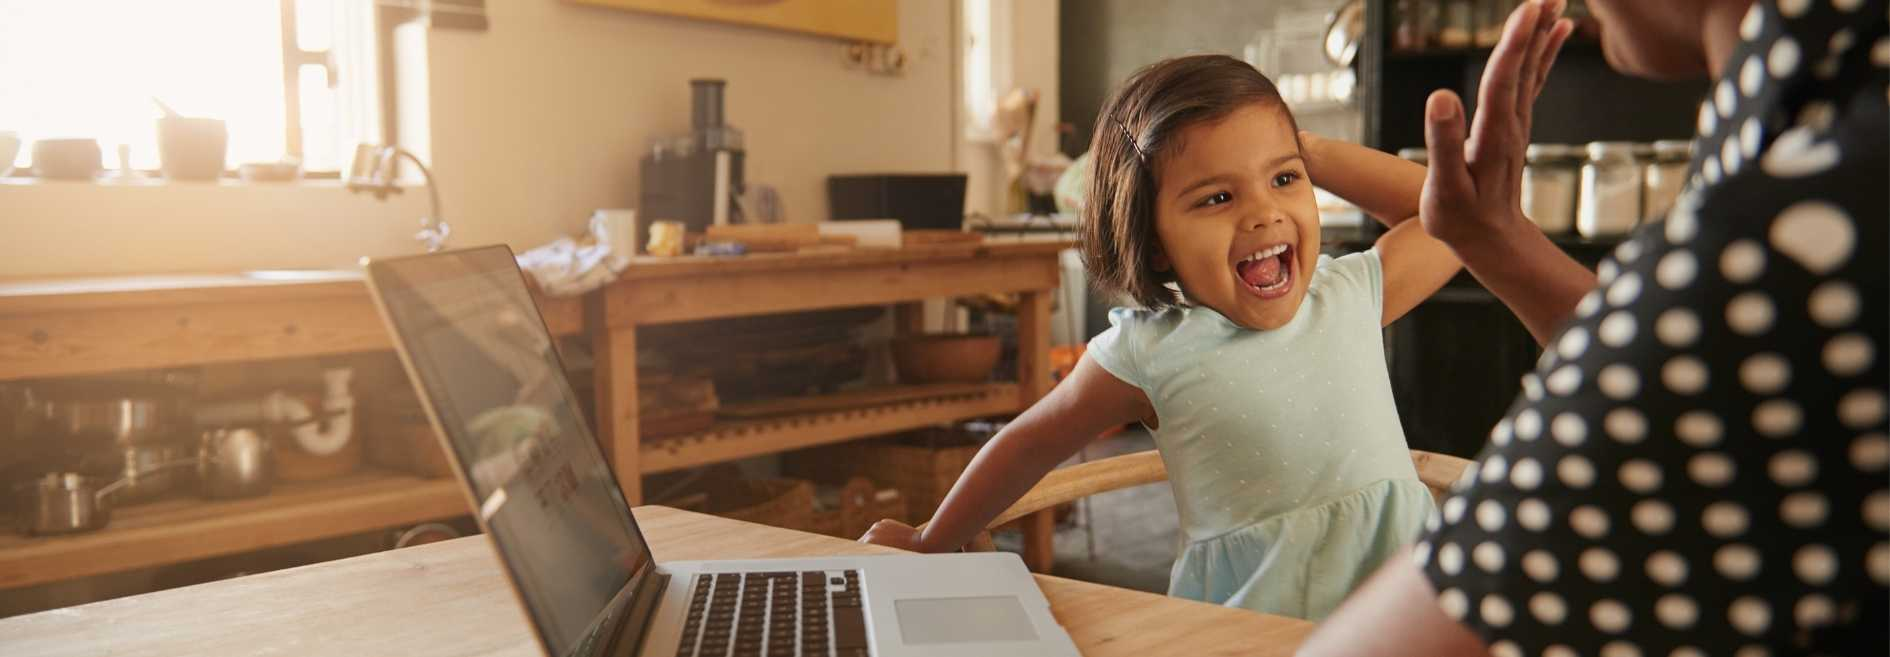 Everything you need to know about the CDA Child Development Associates Certificate